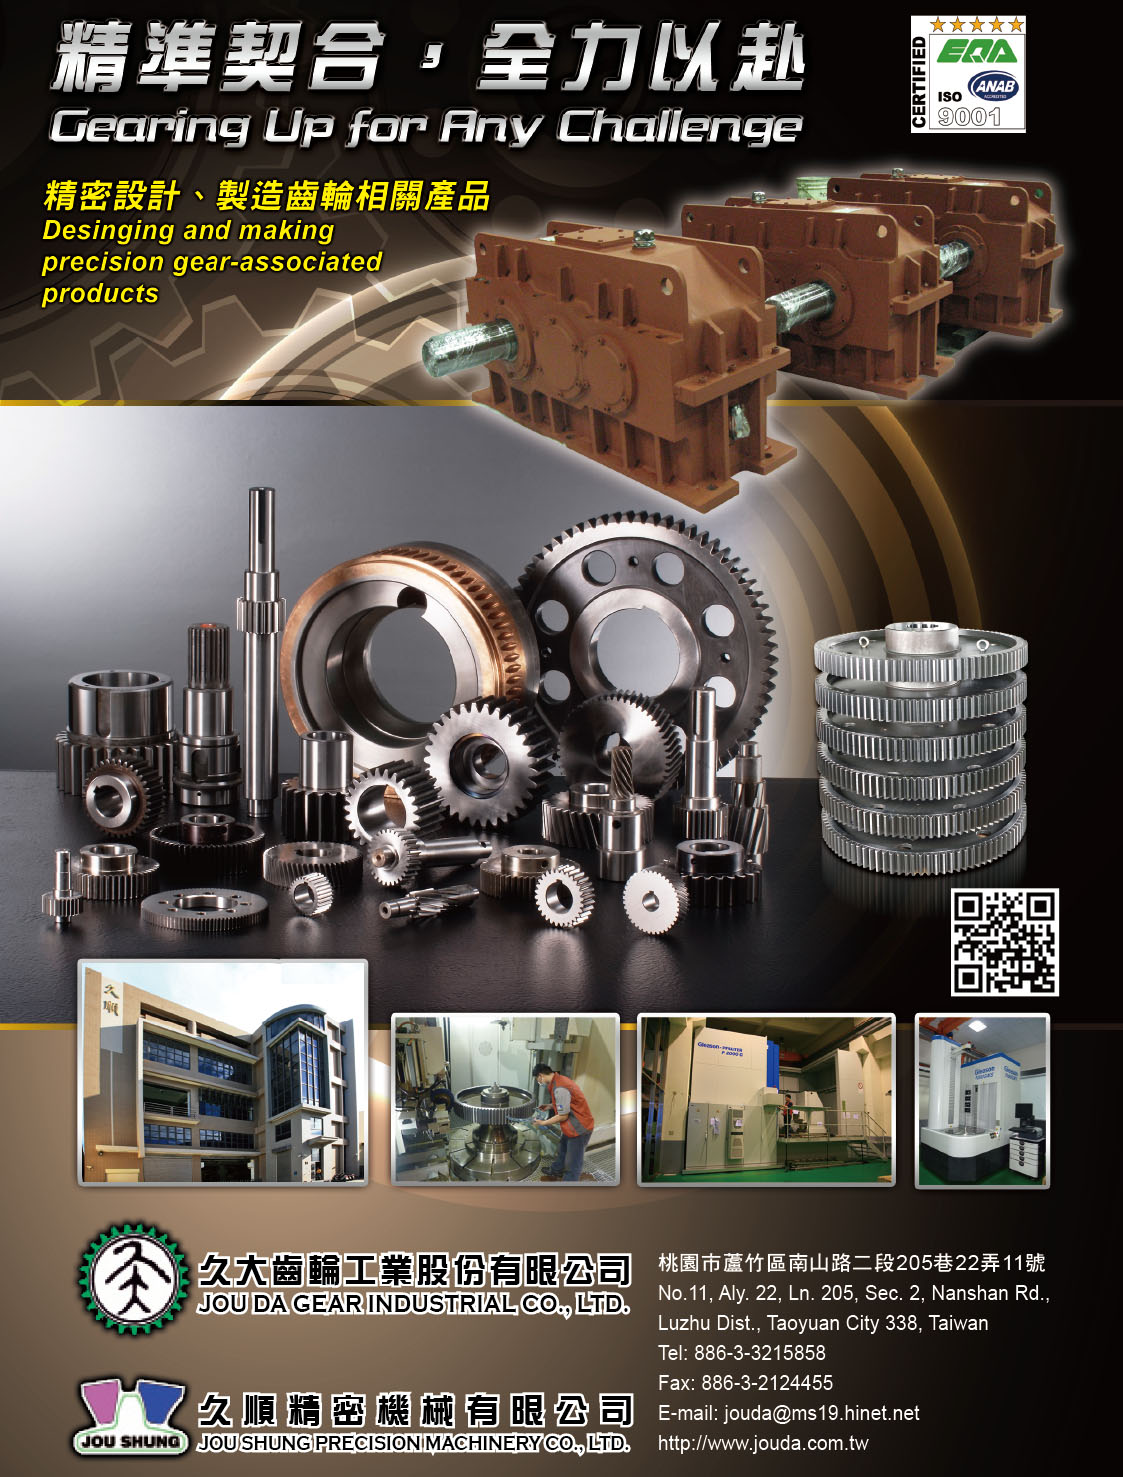 JOU DA GEAR INDUSTRIAL CO., LTD.